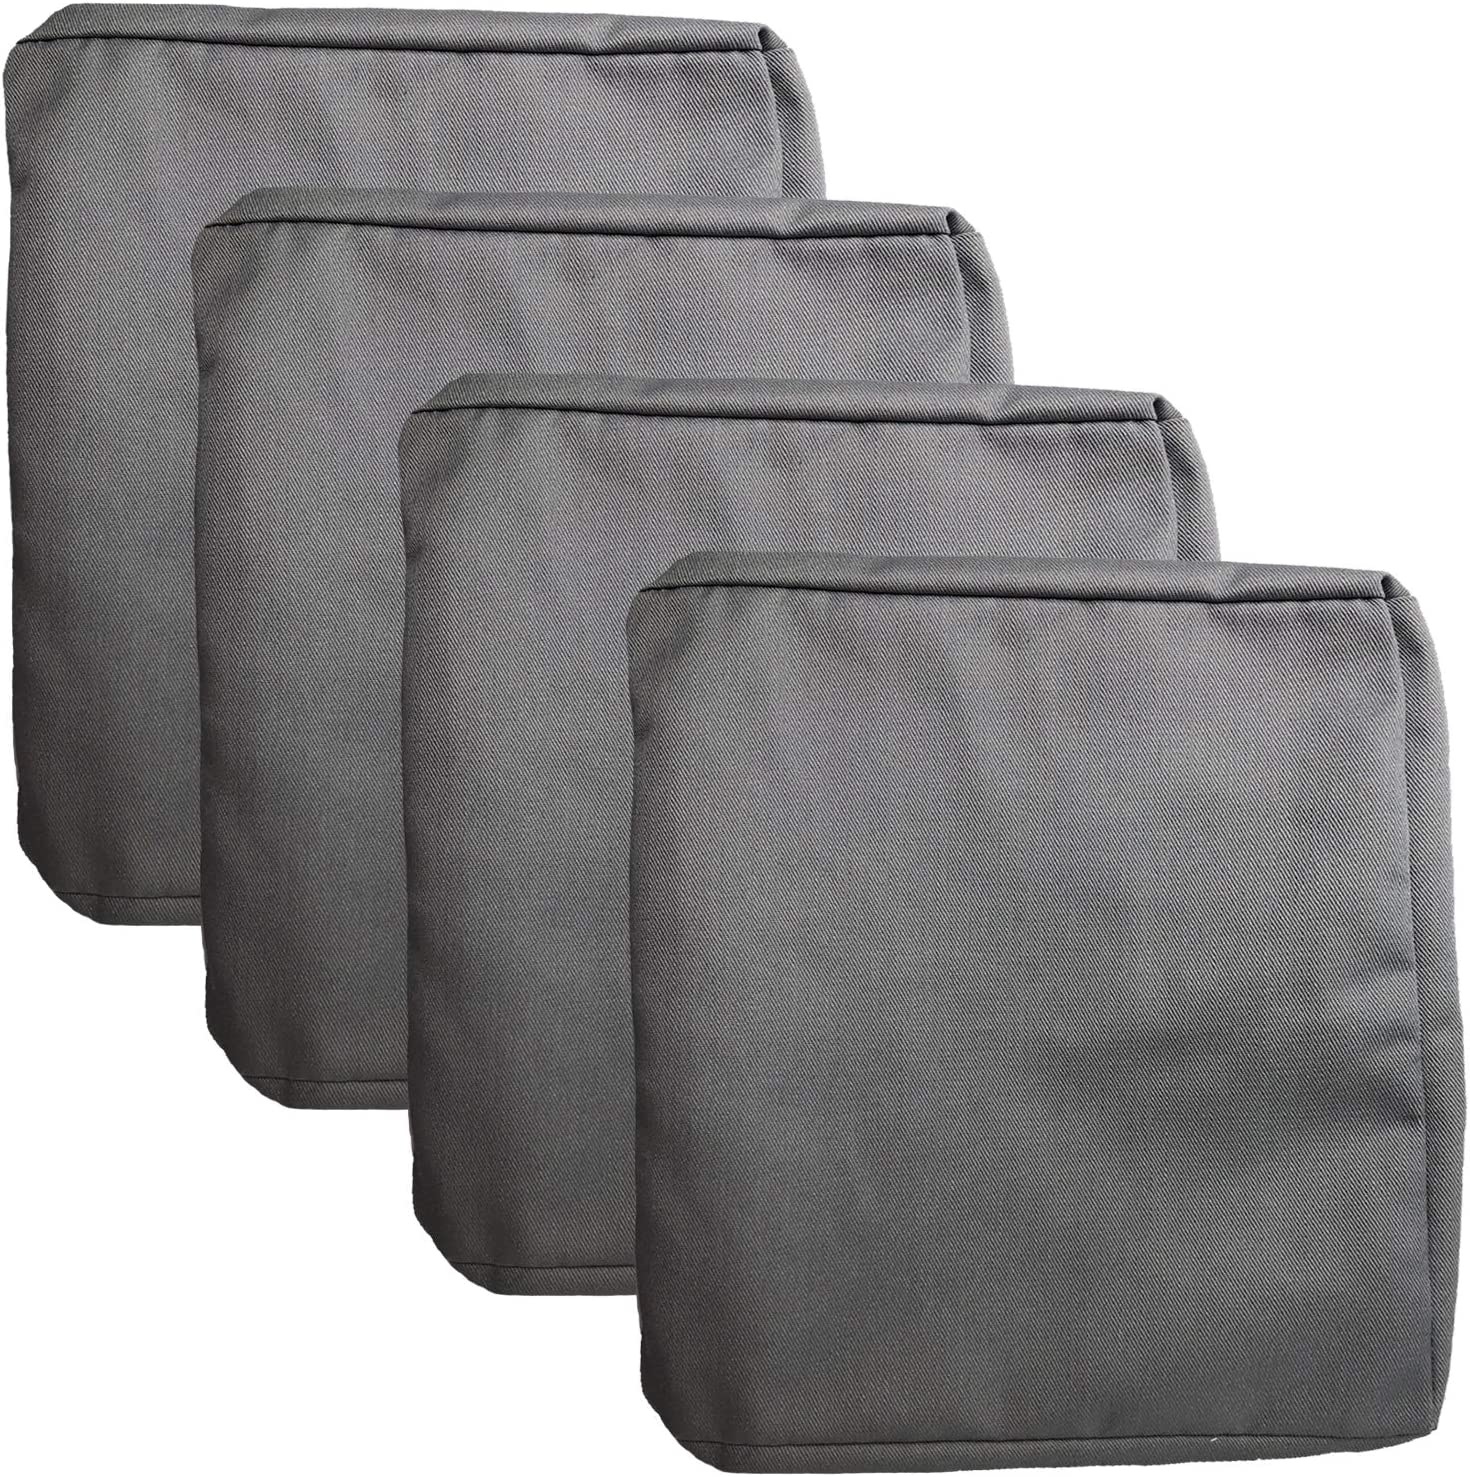 FLYMEI Outdoor Cushion Replacement Covers, Patio Cushion Replacement Seat Covers, Large Chair Seat Covers Only (24'' X 22'' X 4'' 4Pack, Grey)